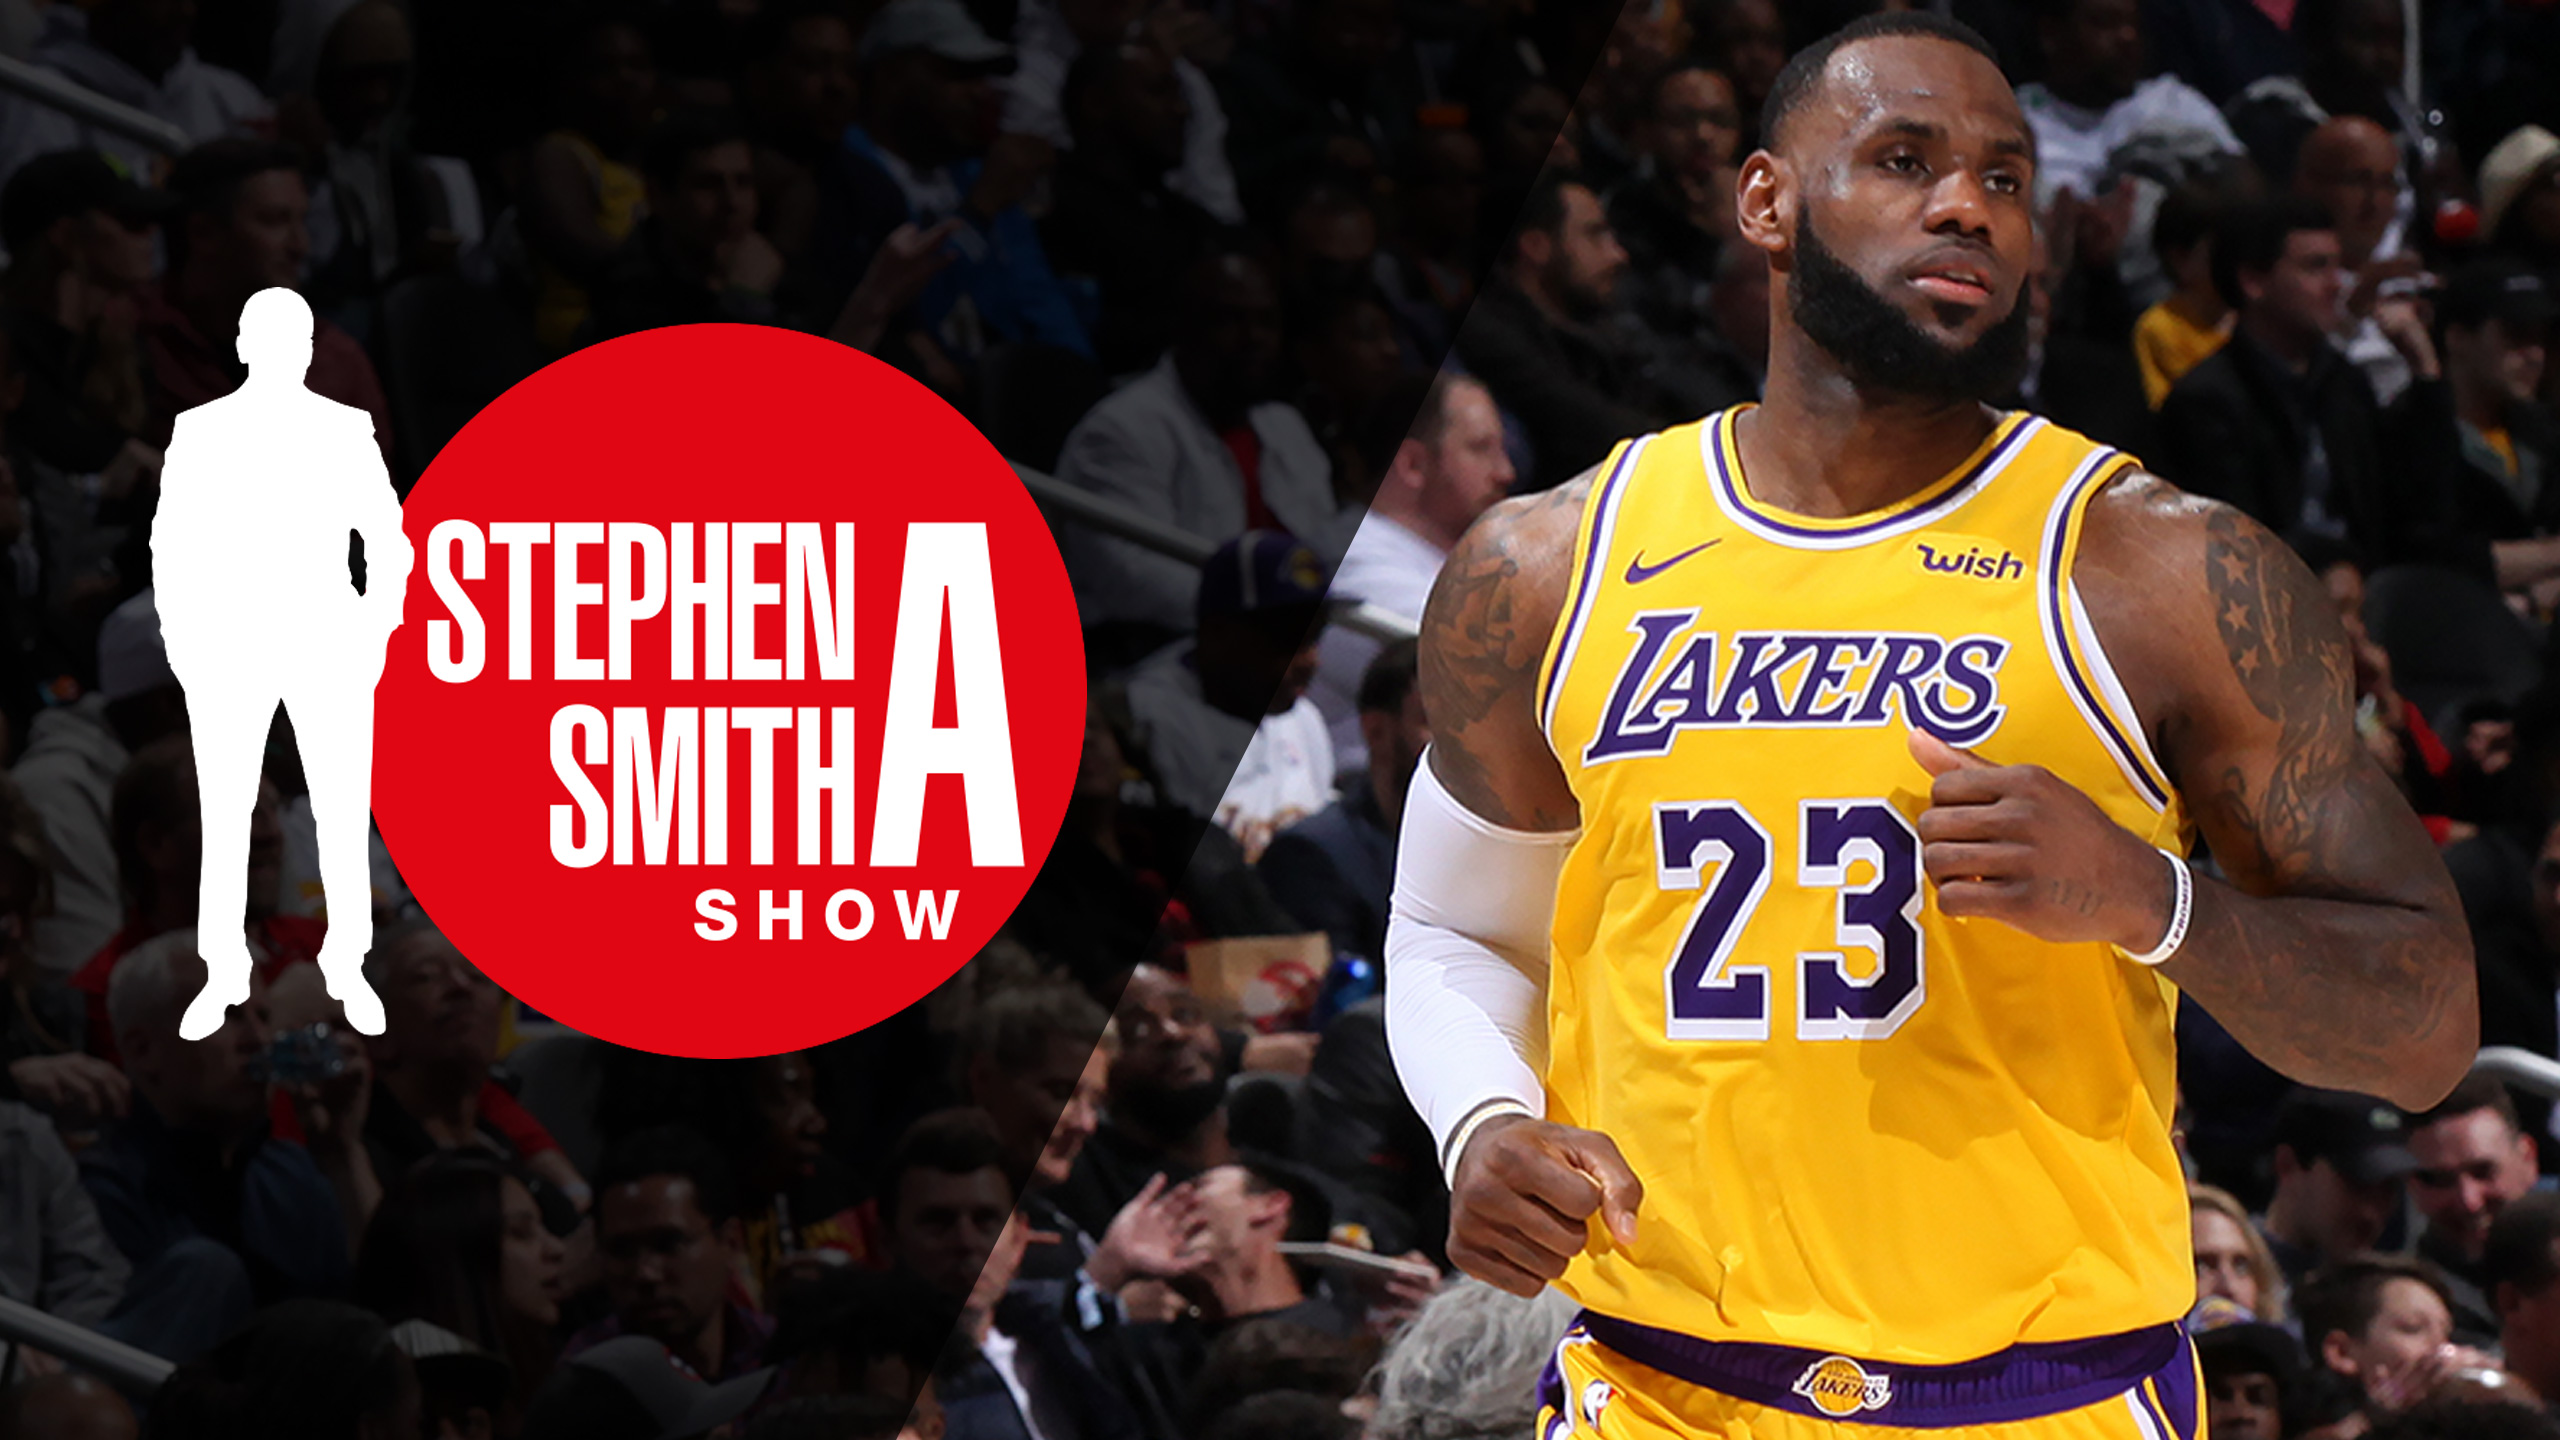 Fri, 2/15 - The Stephen A. Smith Show Presented by Progressive